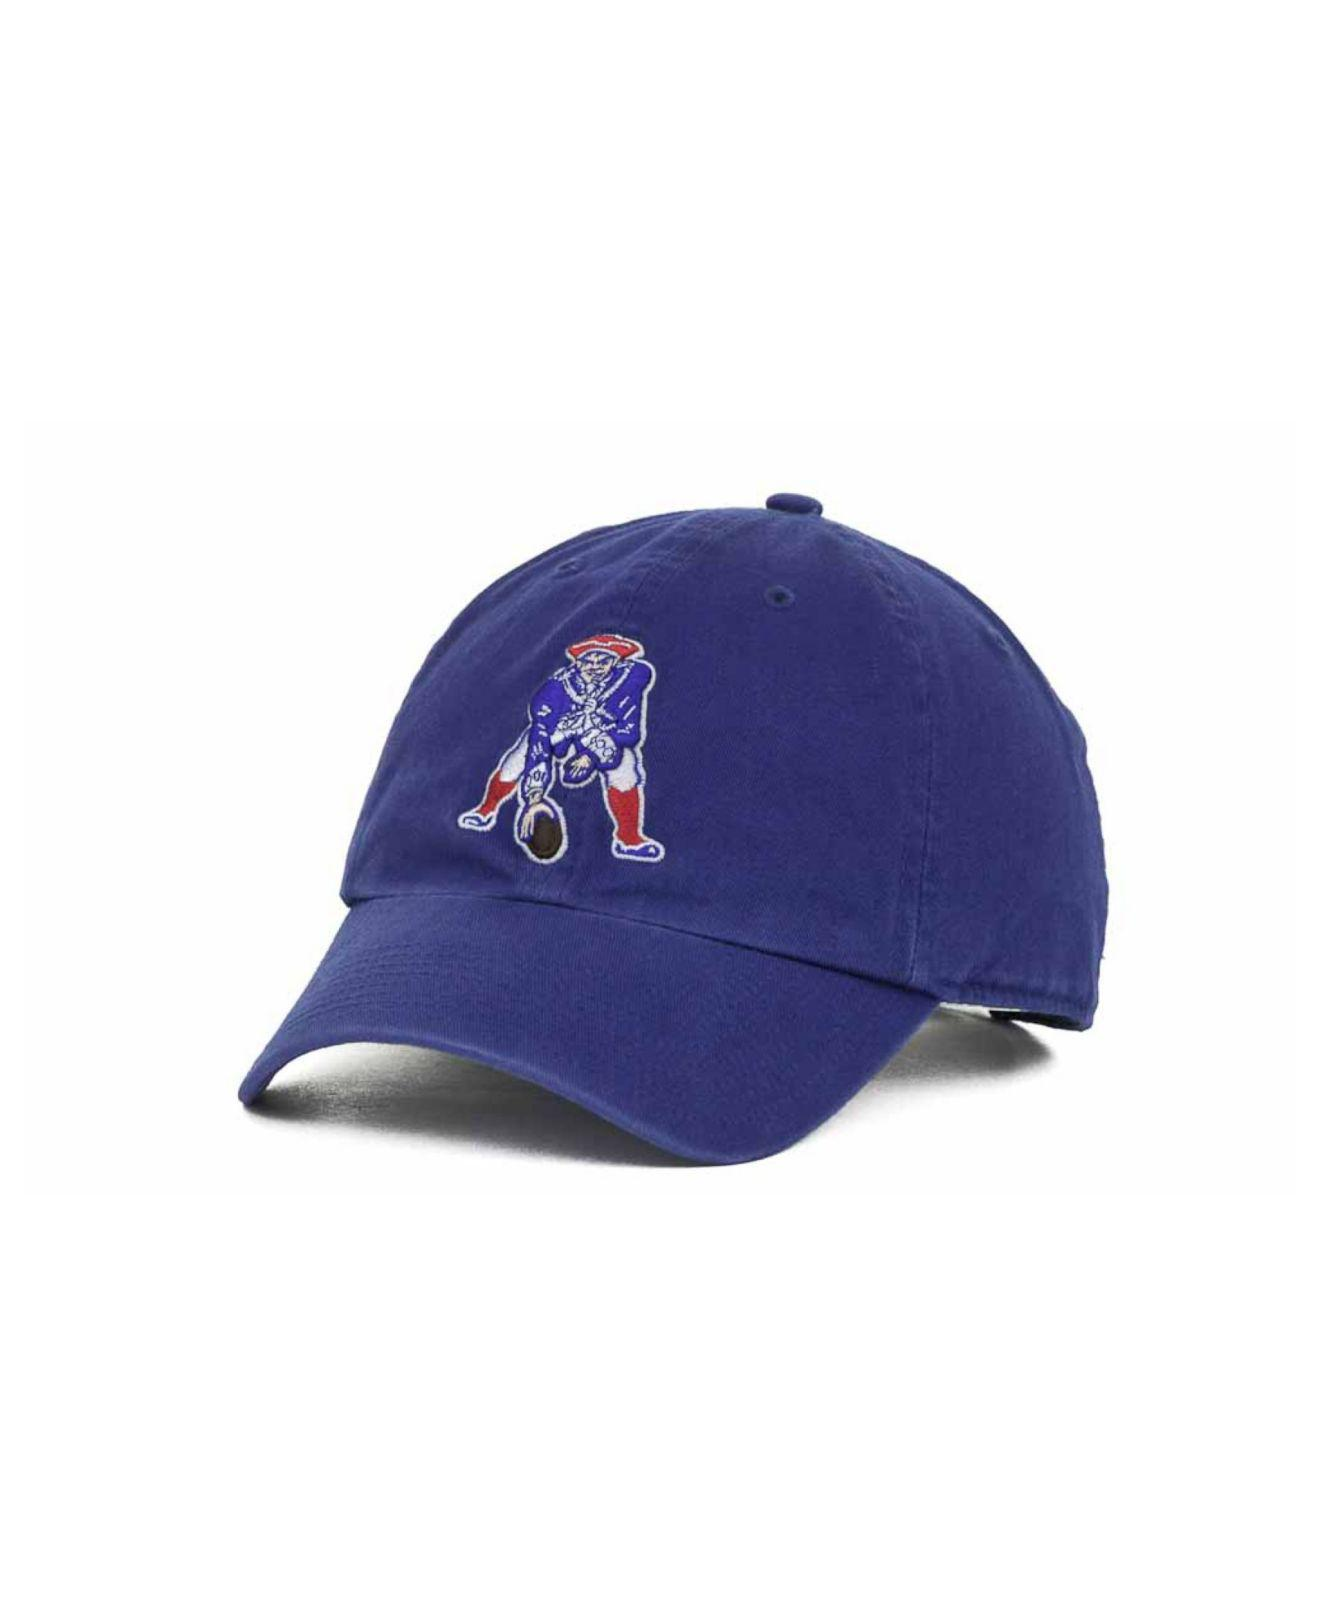 9771b4832fe00 Lyst - 47 Brand New England Patriots Clean Up Cap in Blue for Men